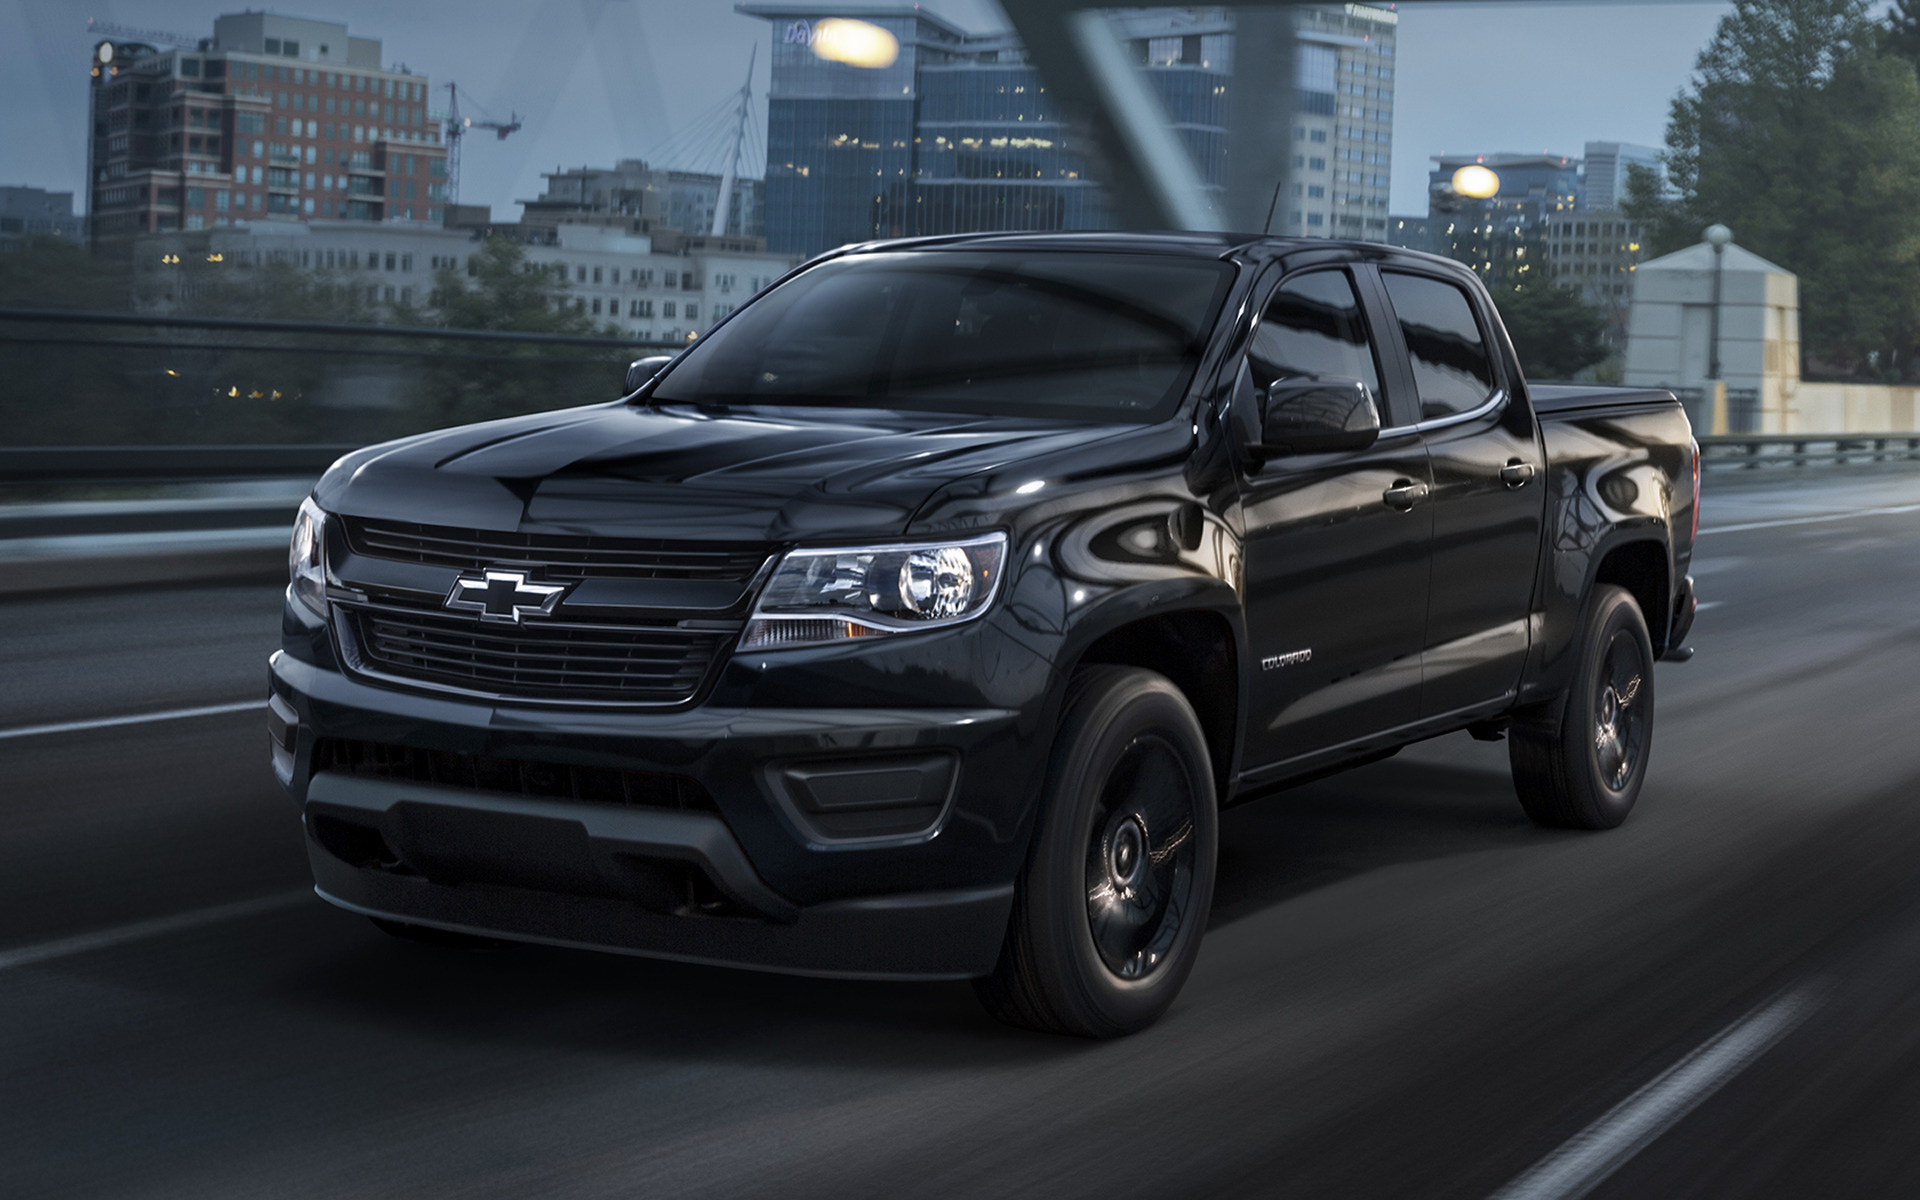 2016 Chevy Colorado Wallpaper - WallpaperSafari